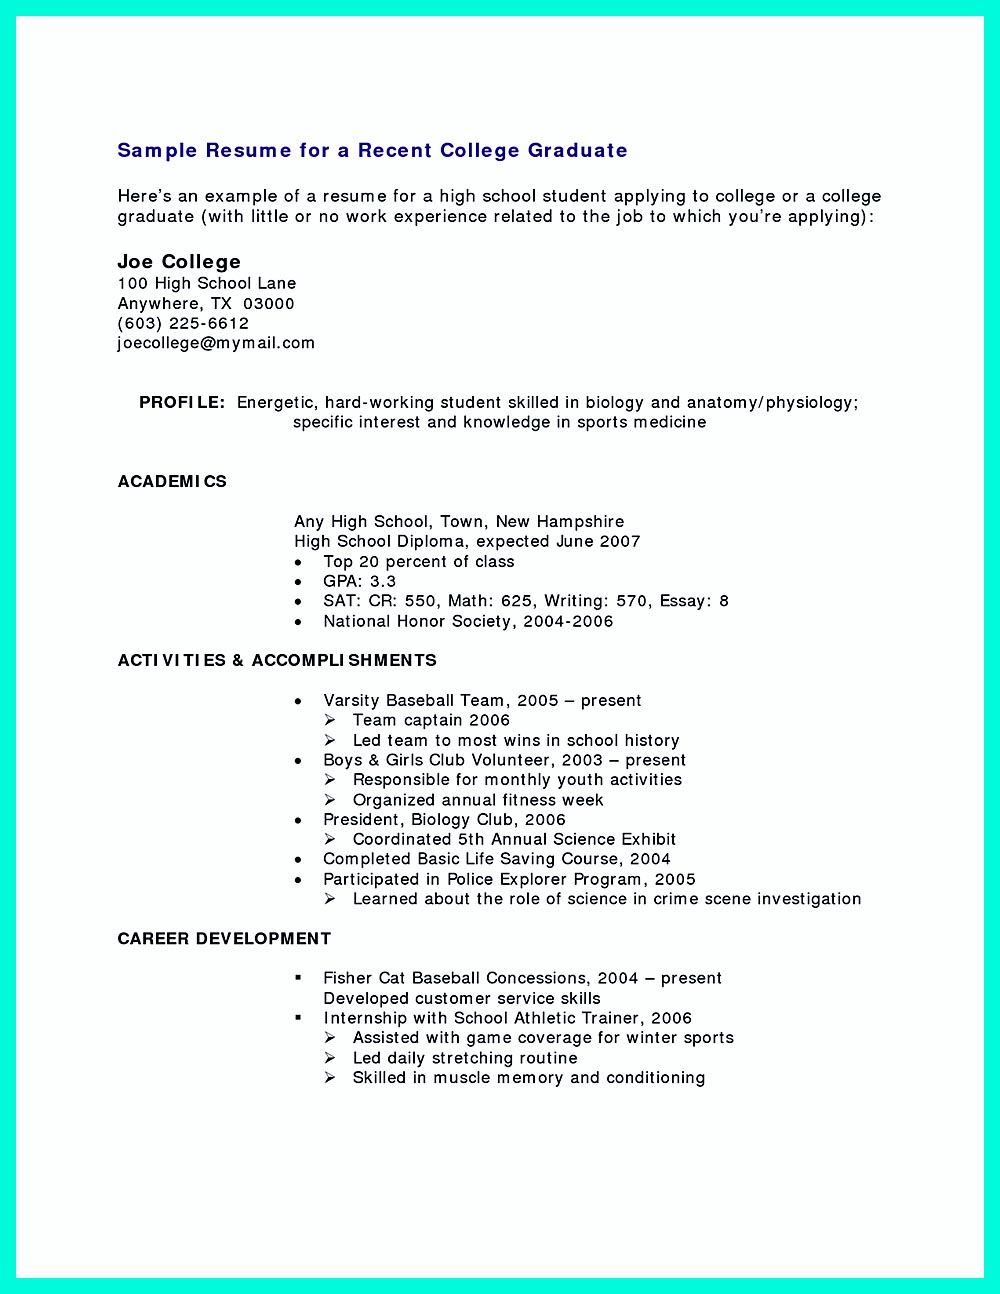 college graduate resume is needed if you think resume is not important then you are